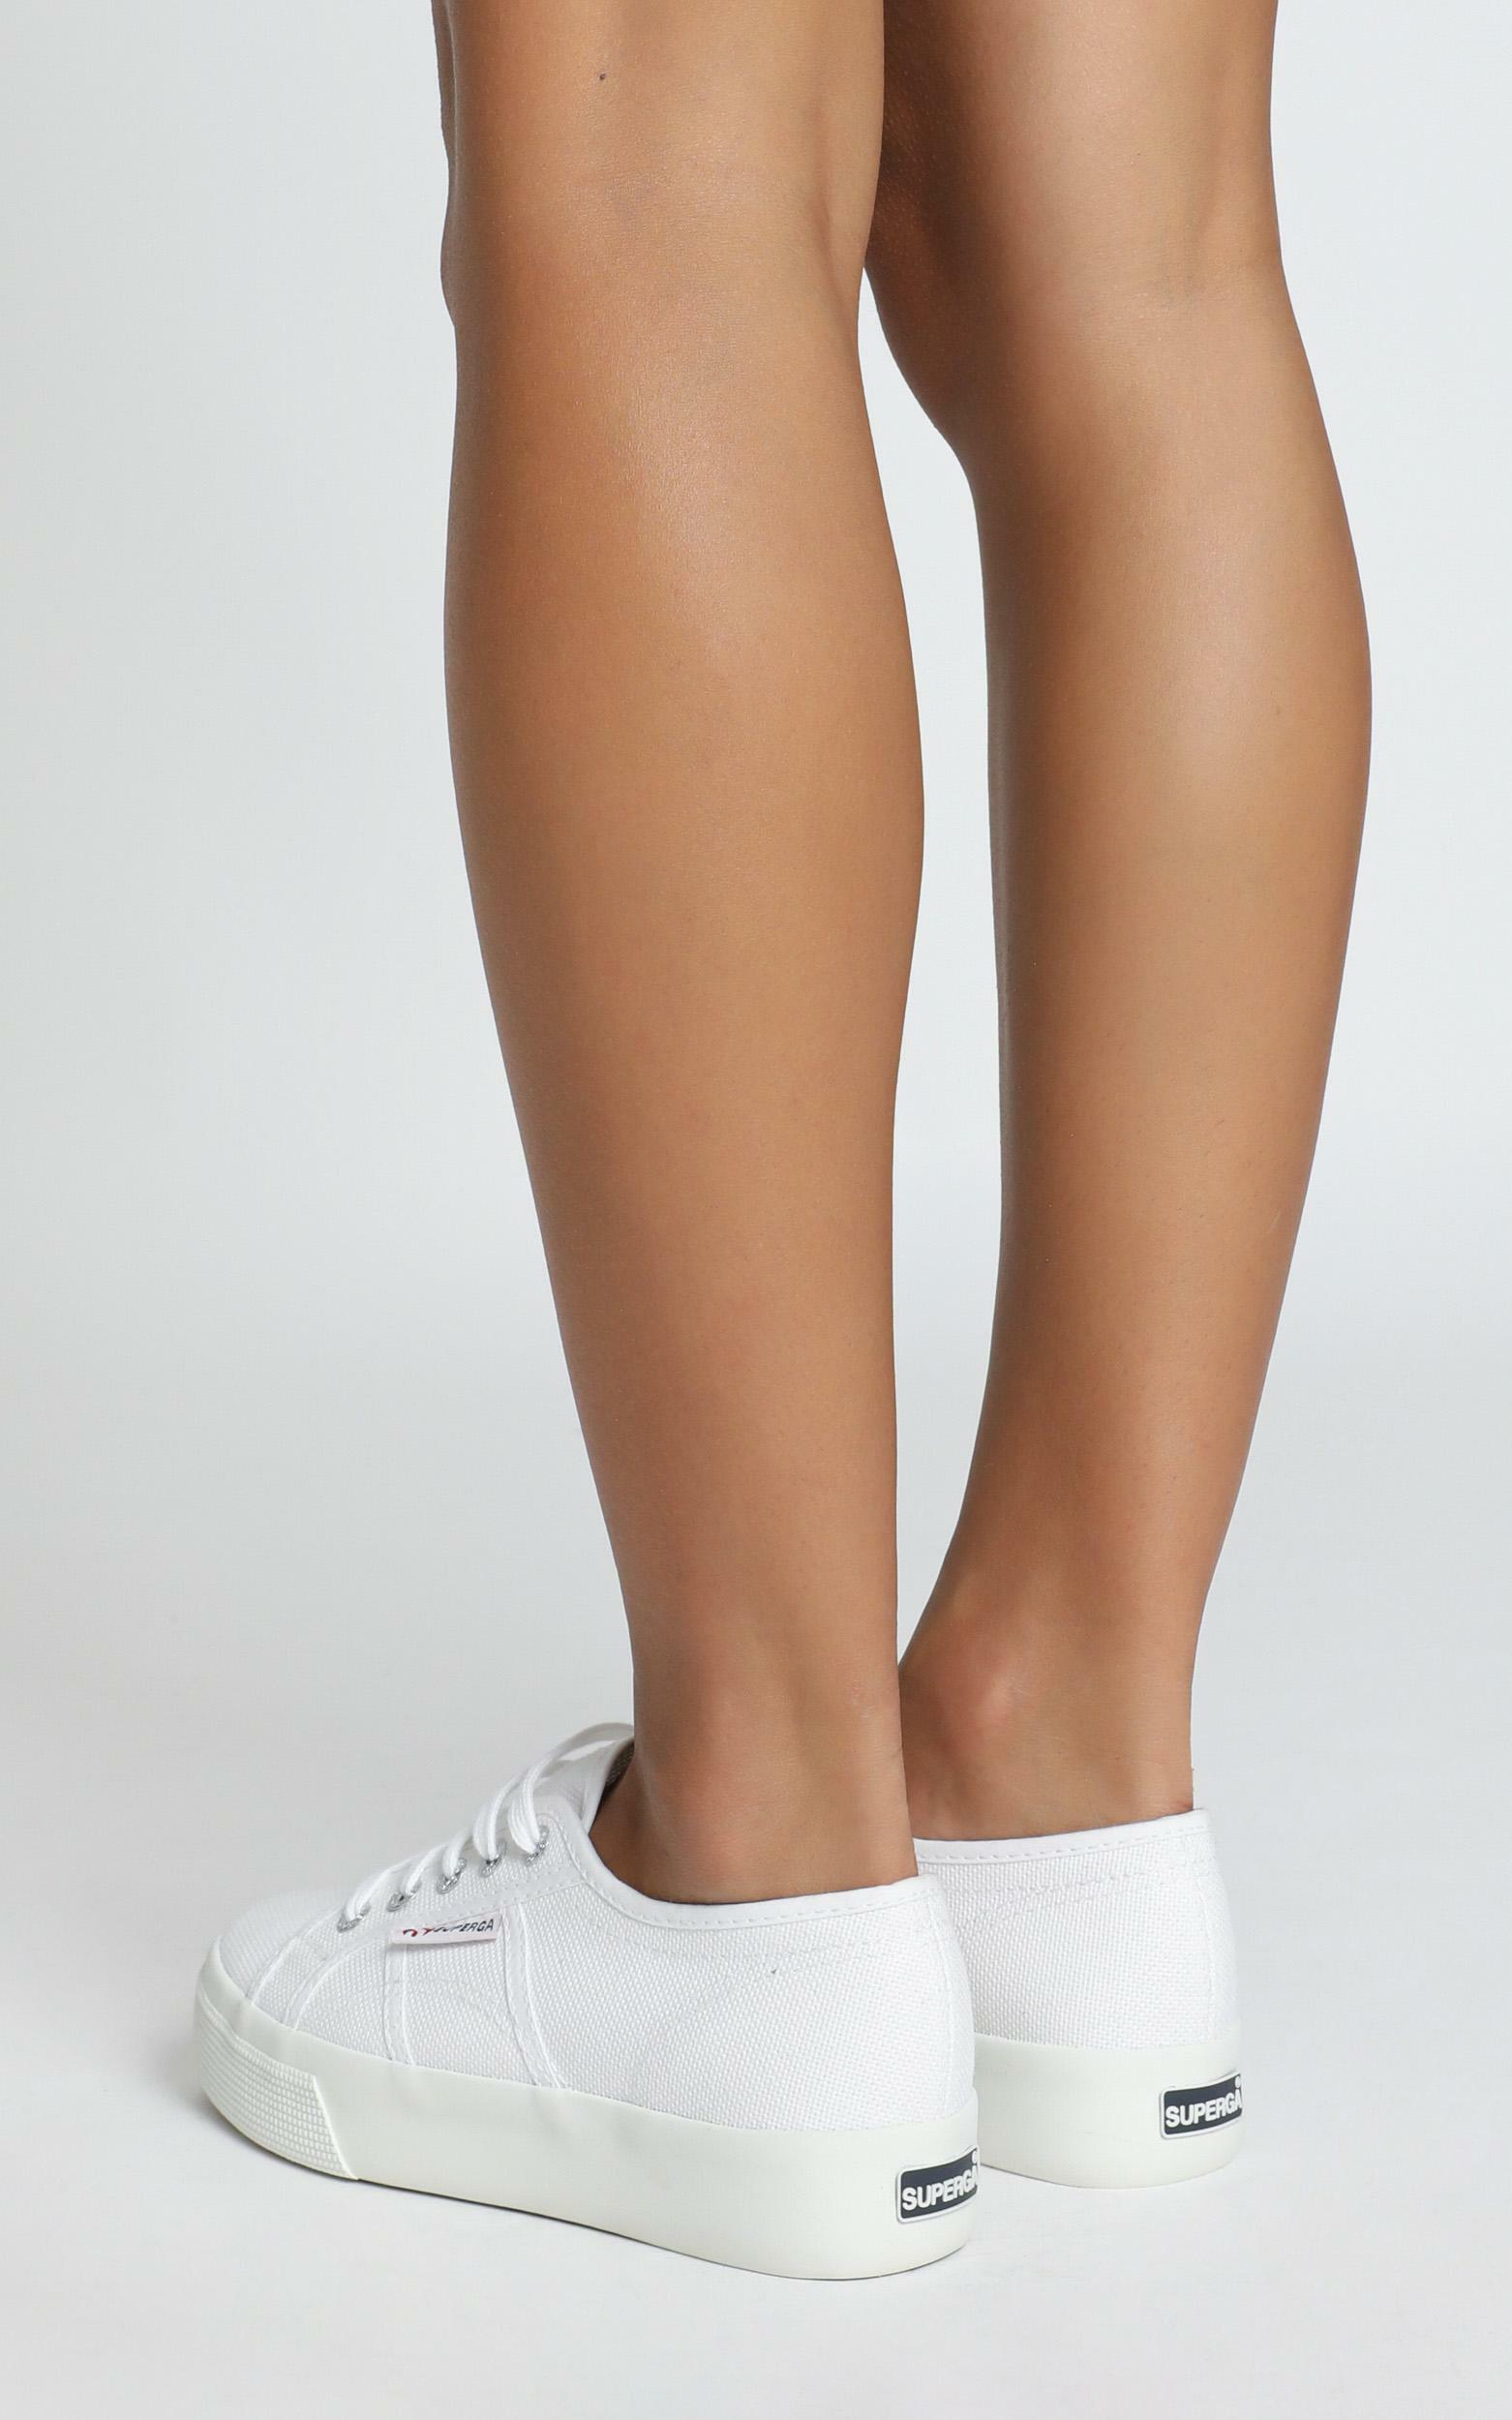 Superga- 2730 Cotu Sneakers in white canvas - 11, White, hi-res image number null